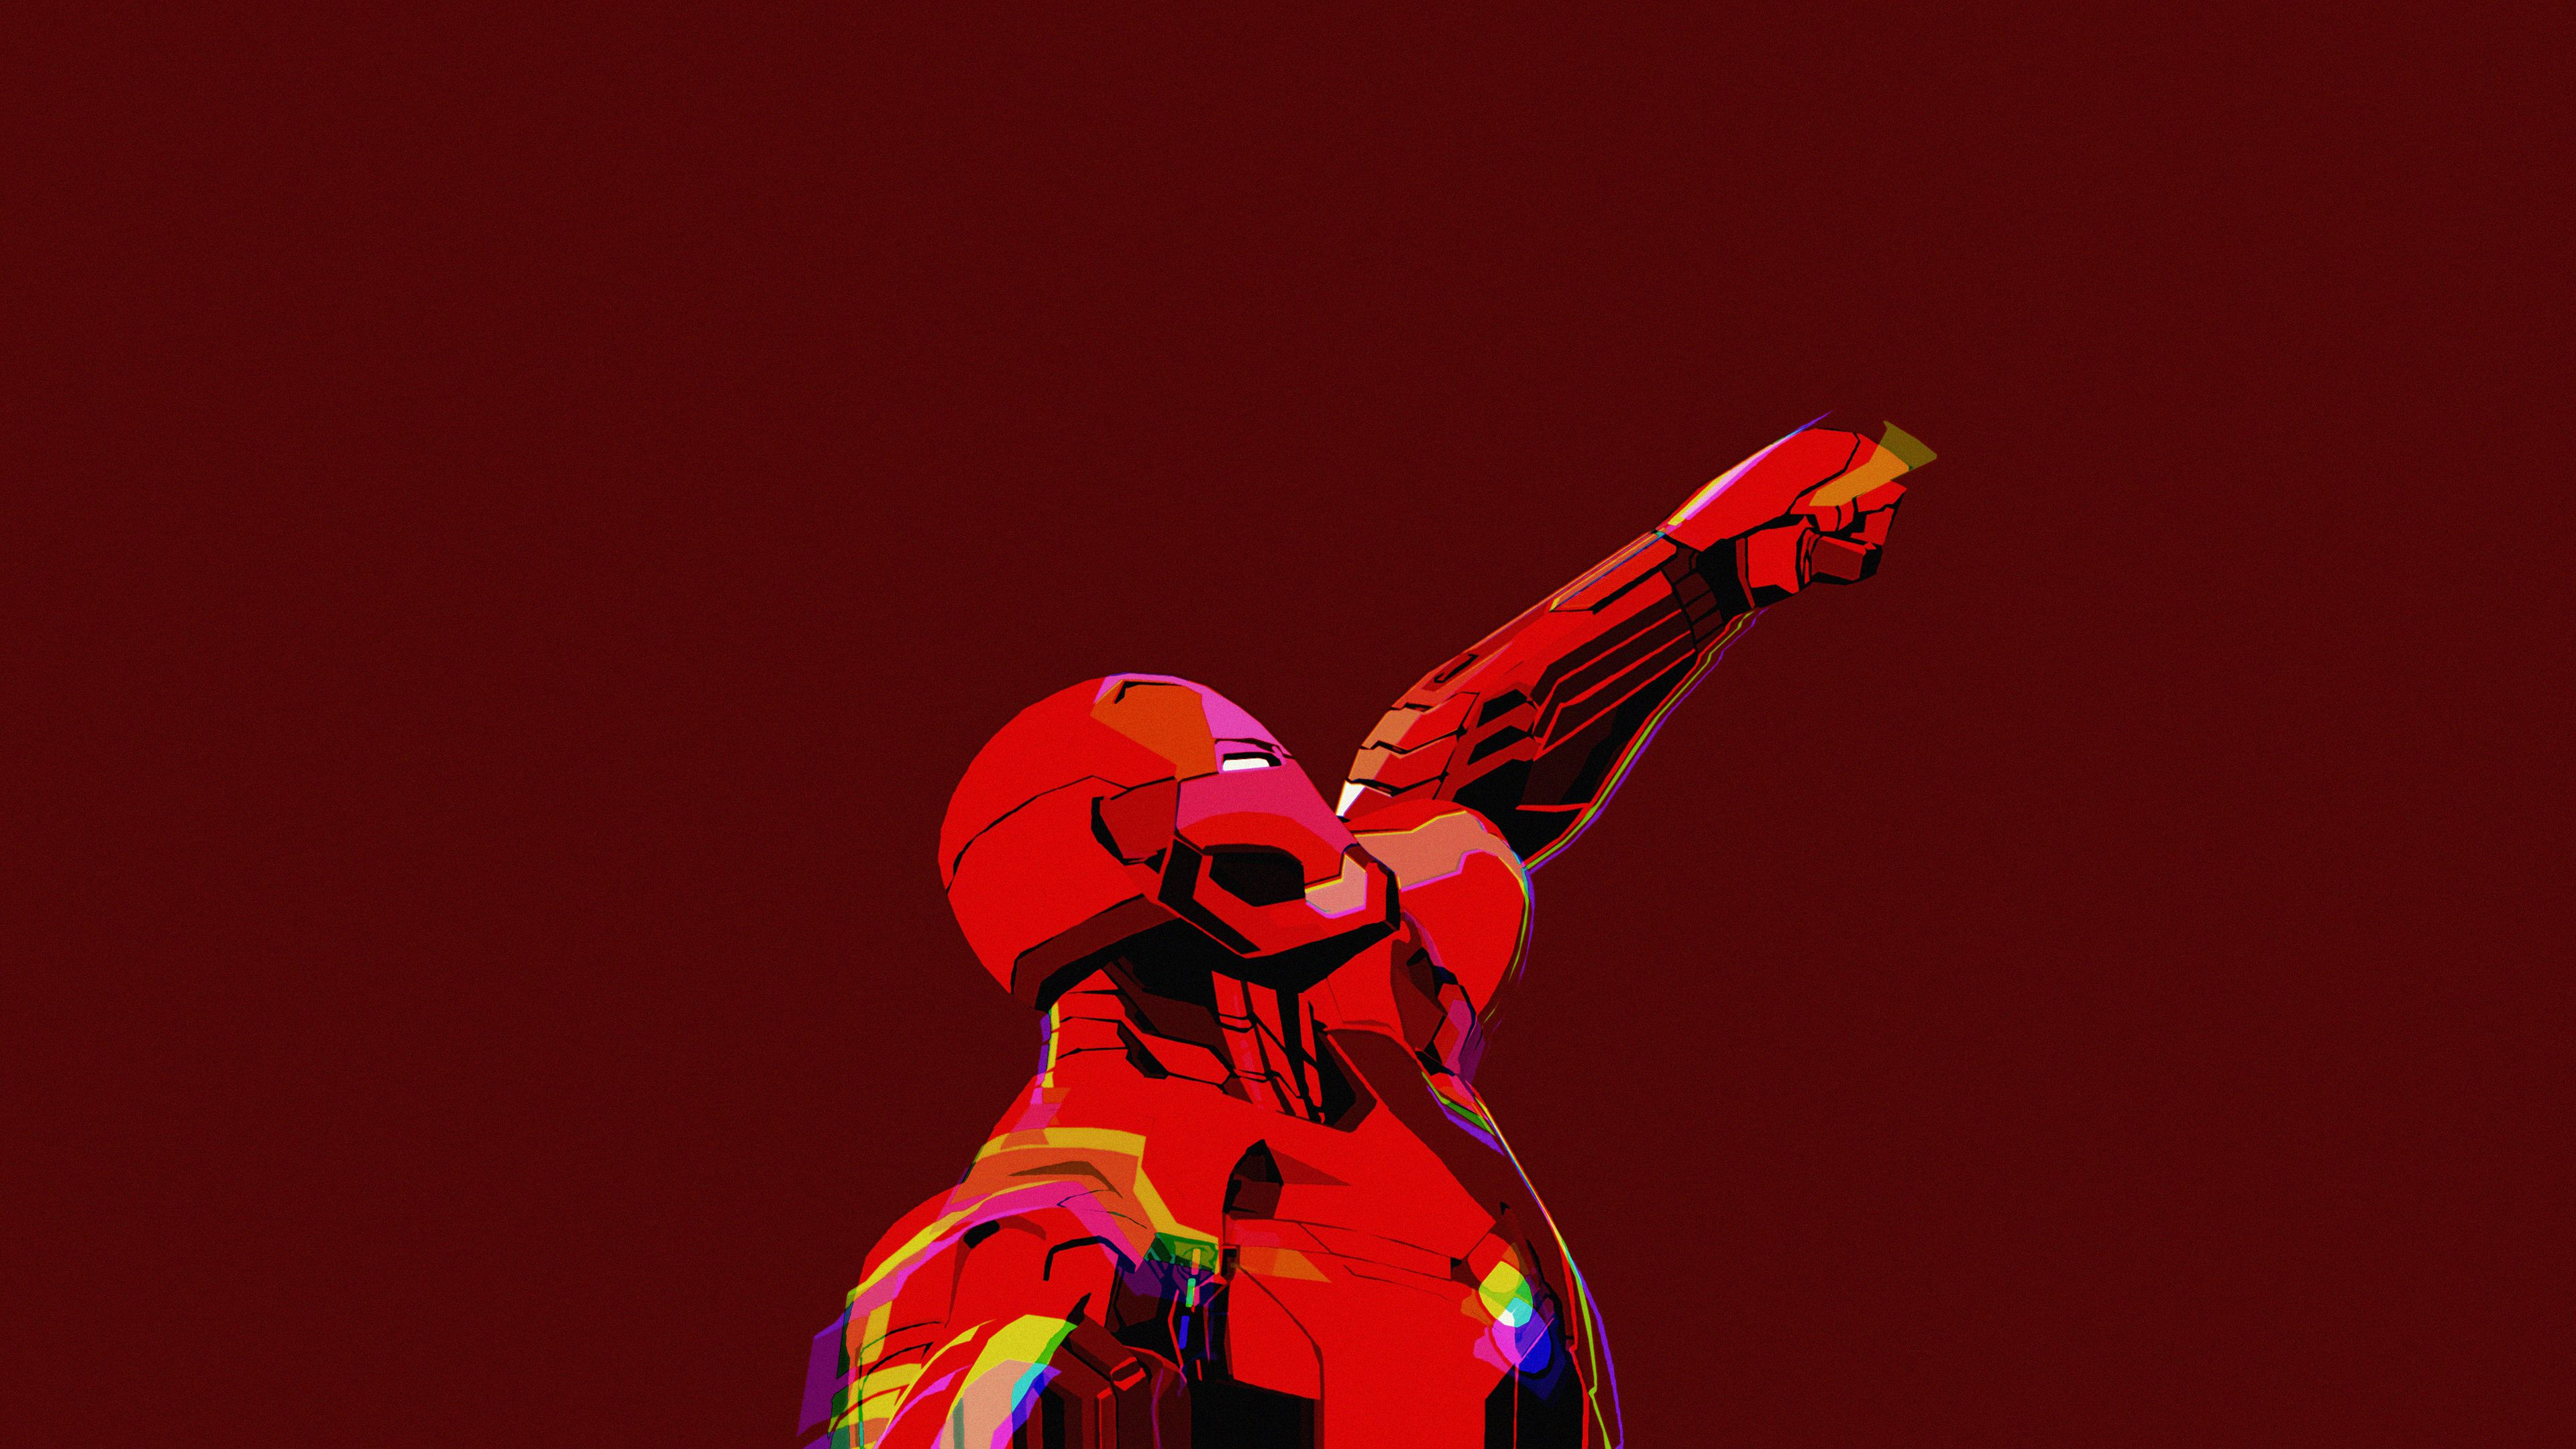 Iron Man Clean Minimal Art Superheroes Wallpapers Minimalist Wallpapers Minimalism Wallpapers Iron Man In 2020 Iron Man Wallpaper Minimalist Wallpaper Art Wallpaper